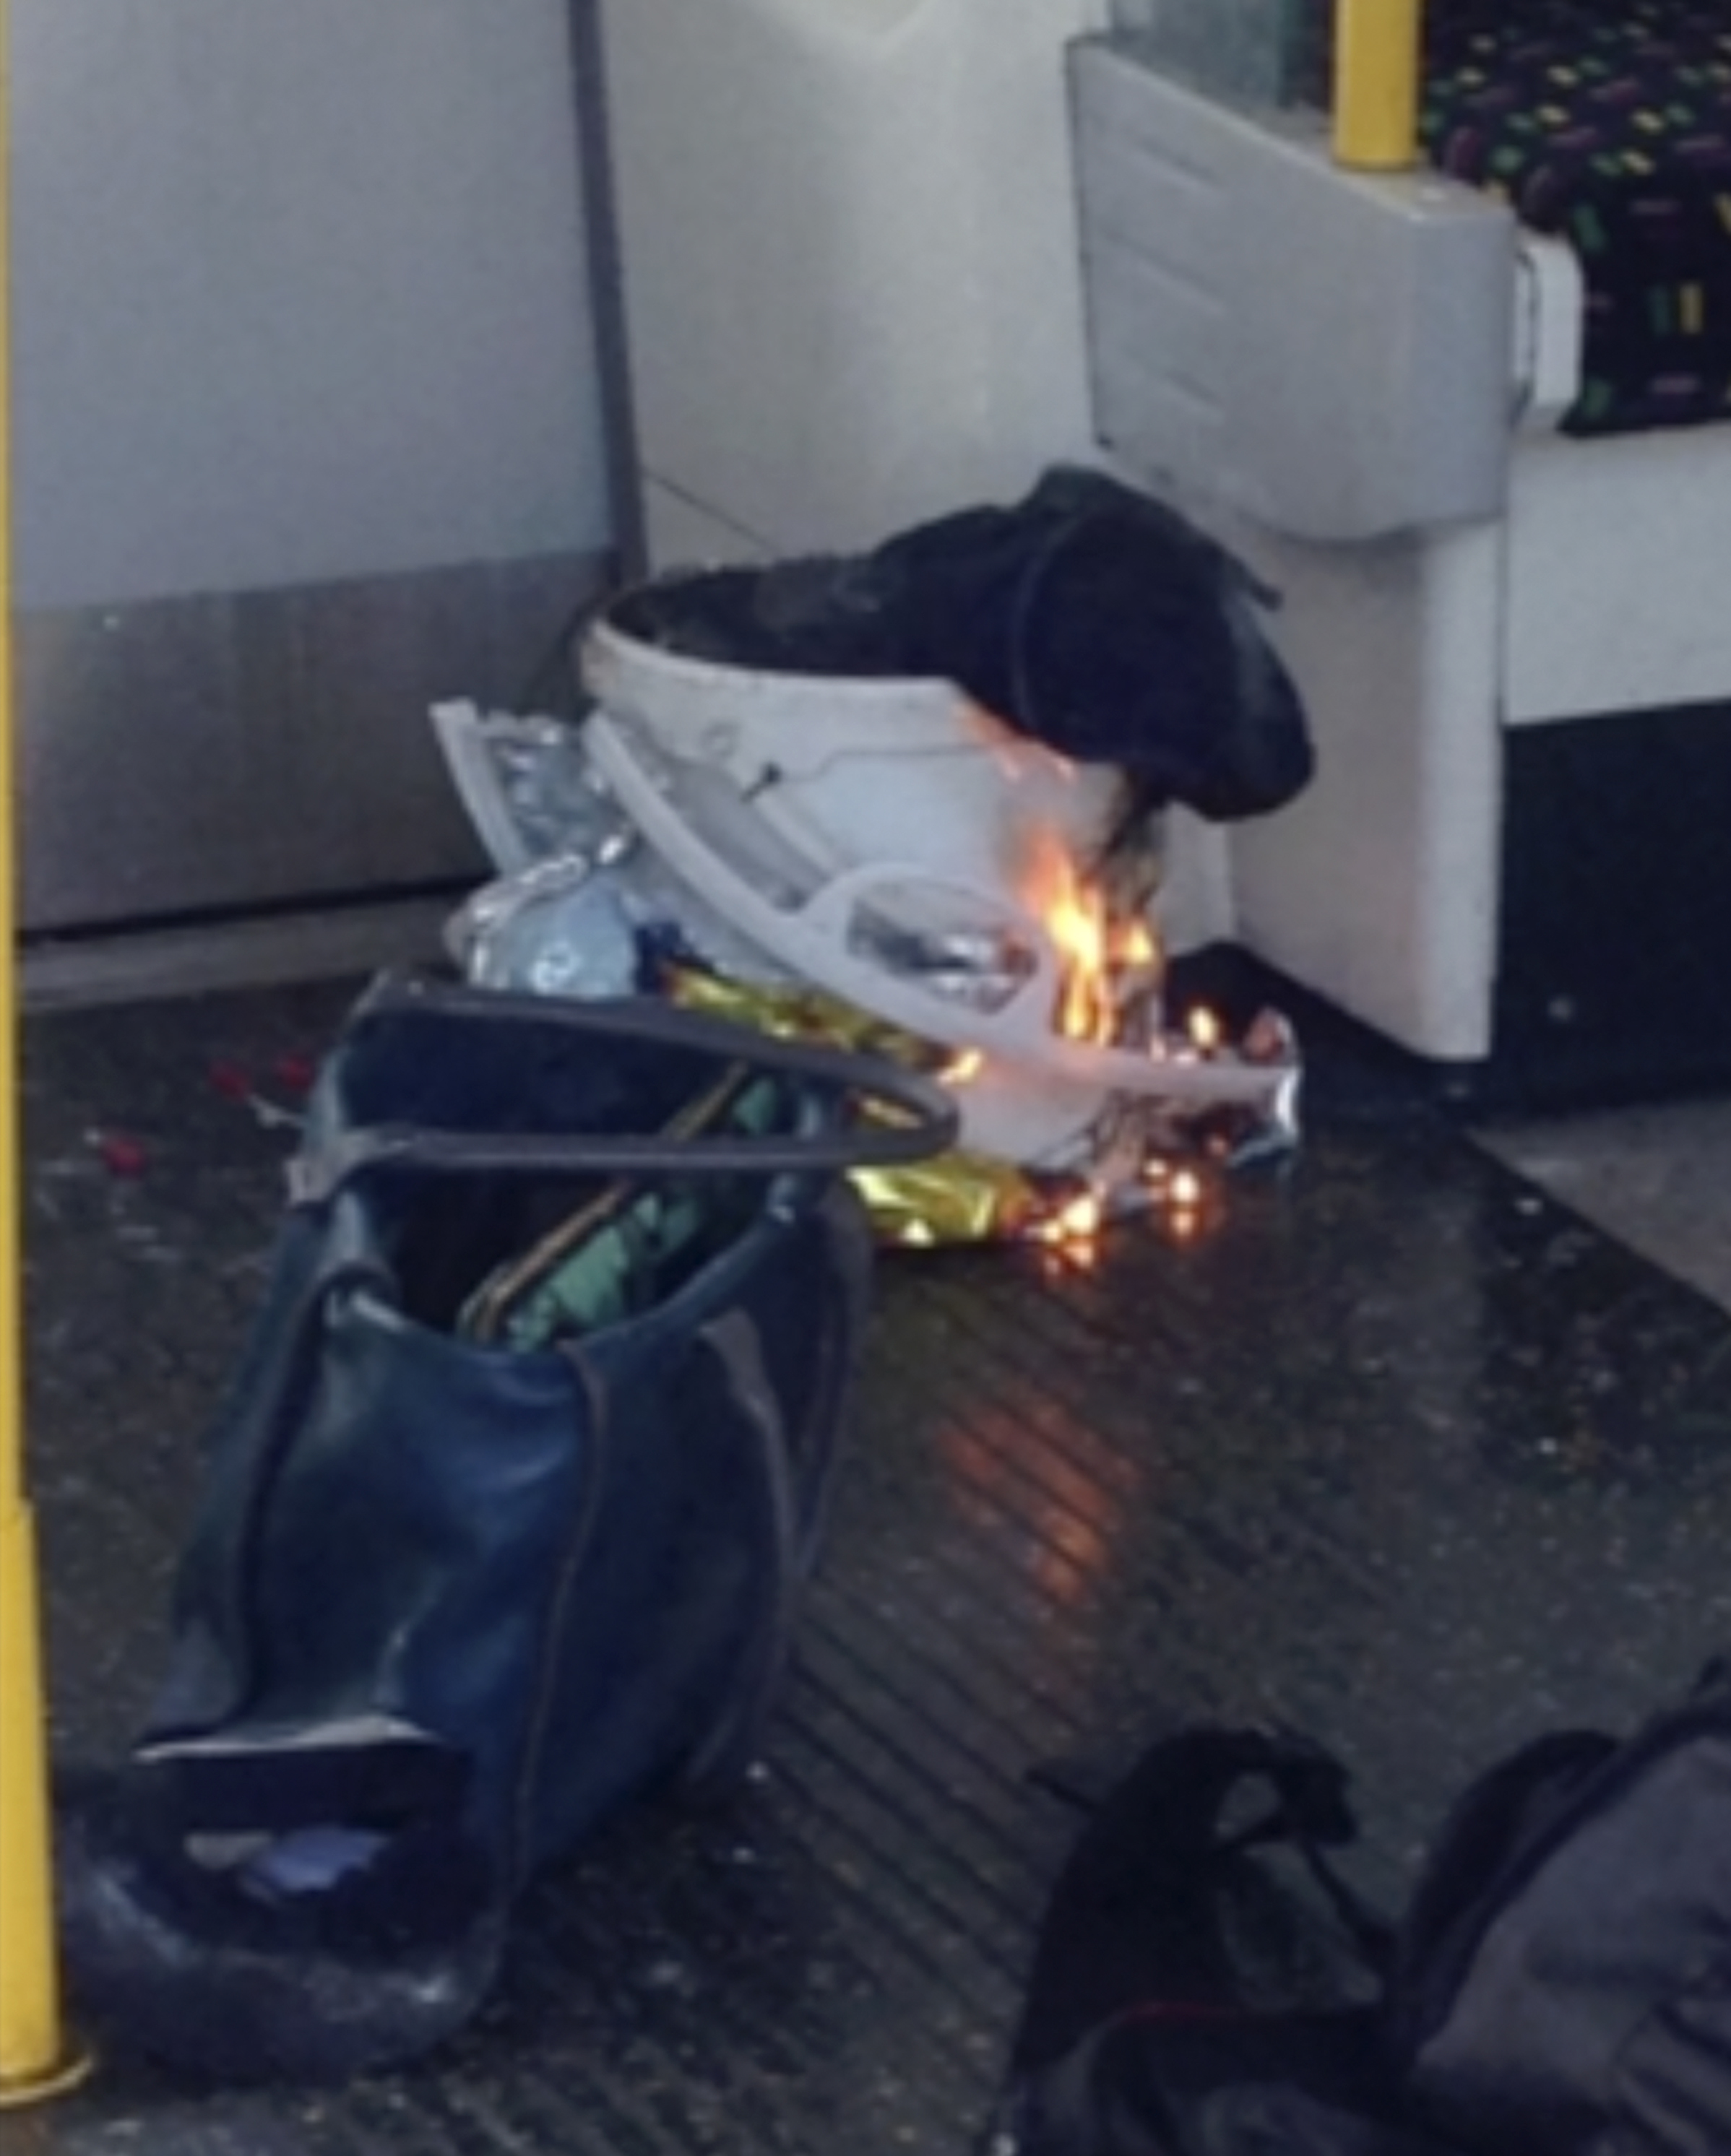 "<div class=""meta image-caption""><div class=""origin-logo origin-image none""><span>none</span></div><span class=""caption-text"">In this image made from video, fire raises at a southwest London subway station in London Friday, Sept. 15, 2017. (RRIGS via AP)</span></div>"